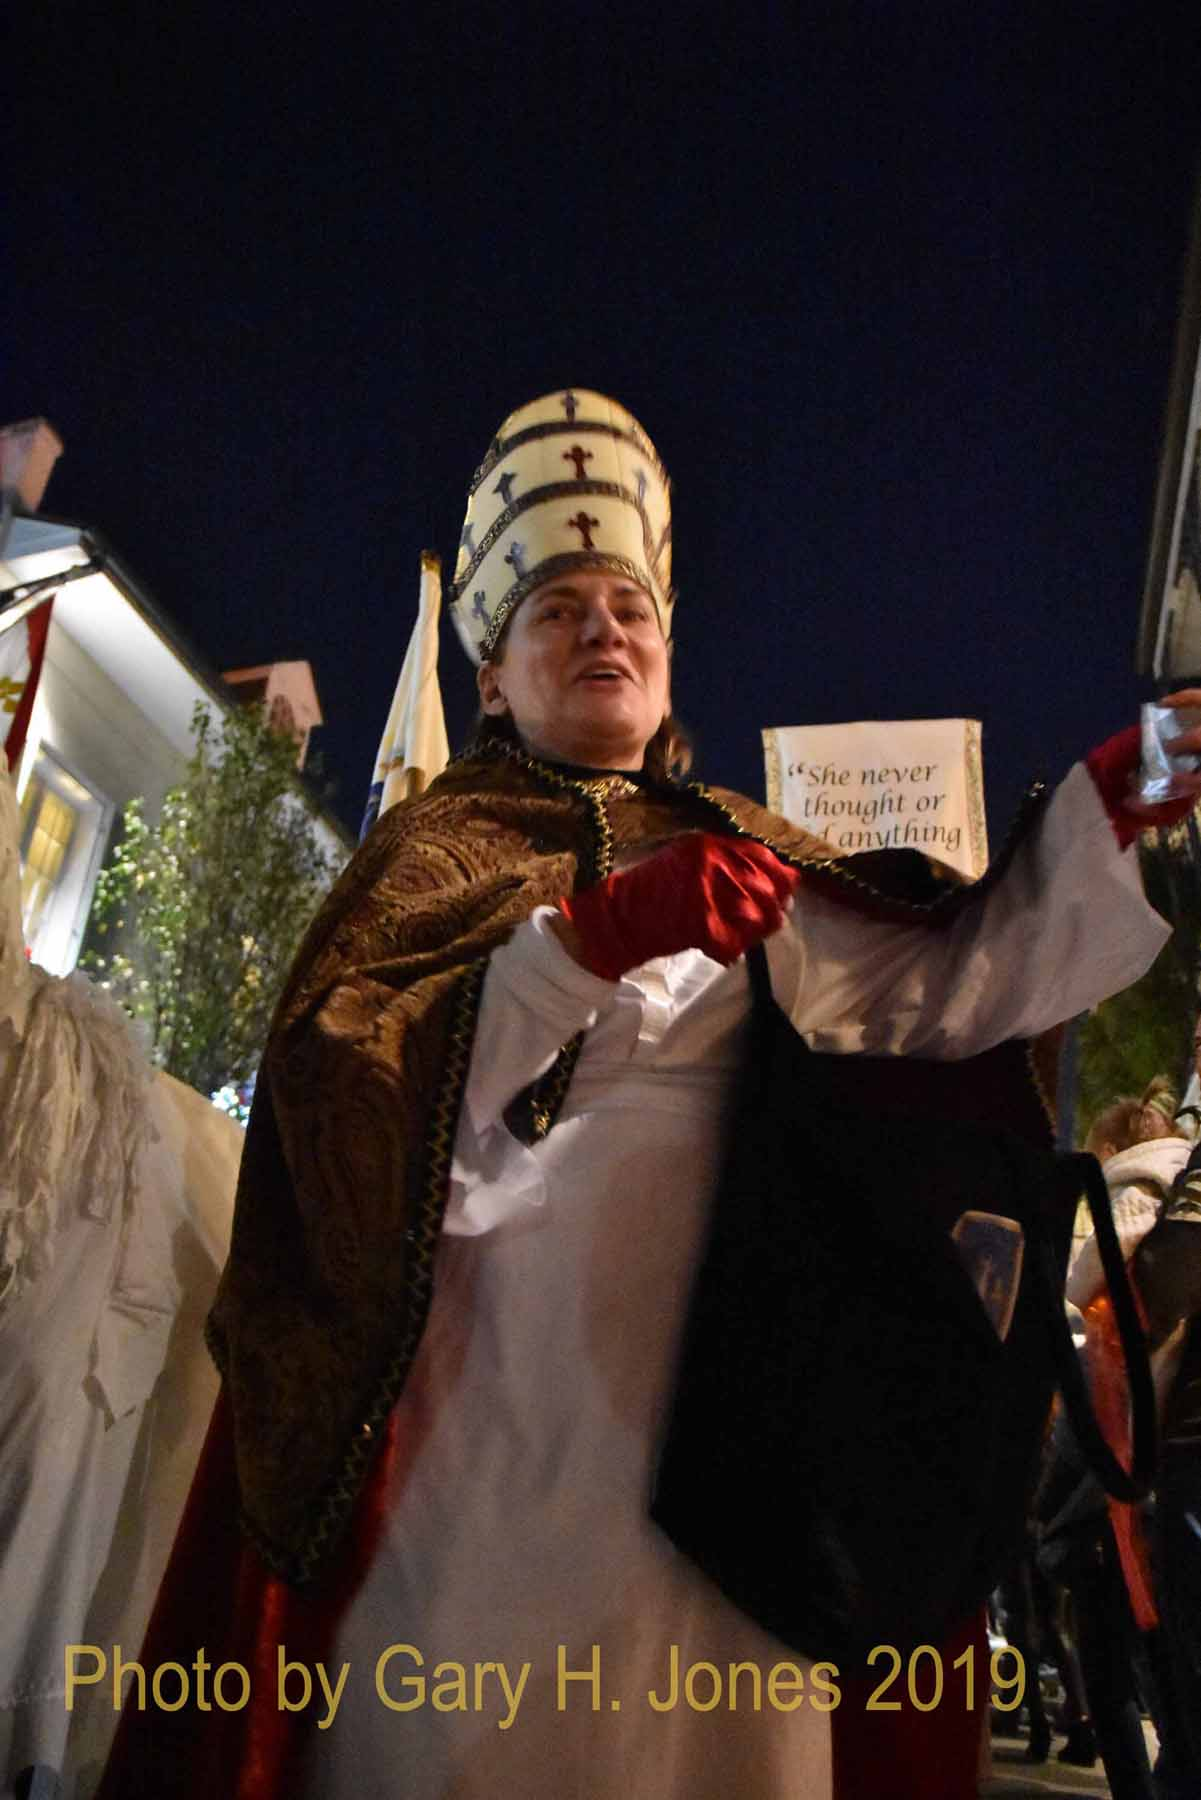 NOLA Joan of Arc parade 2019